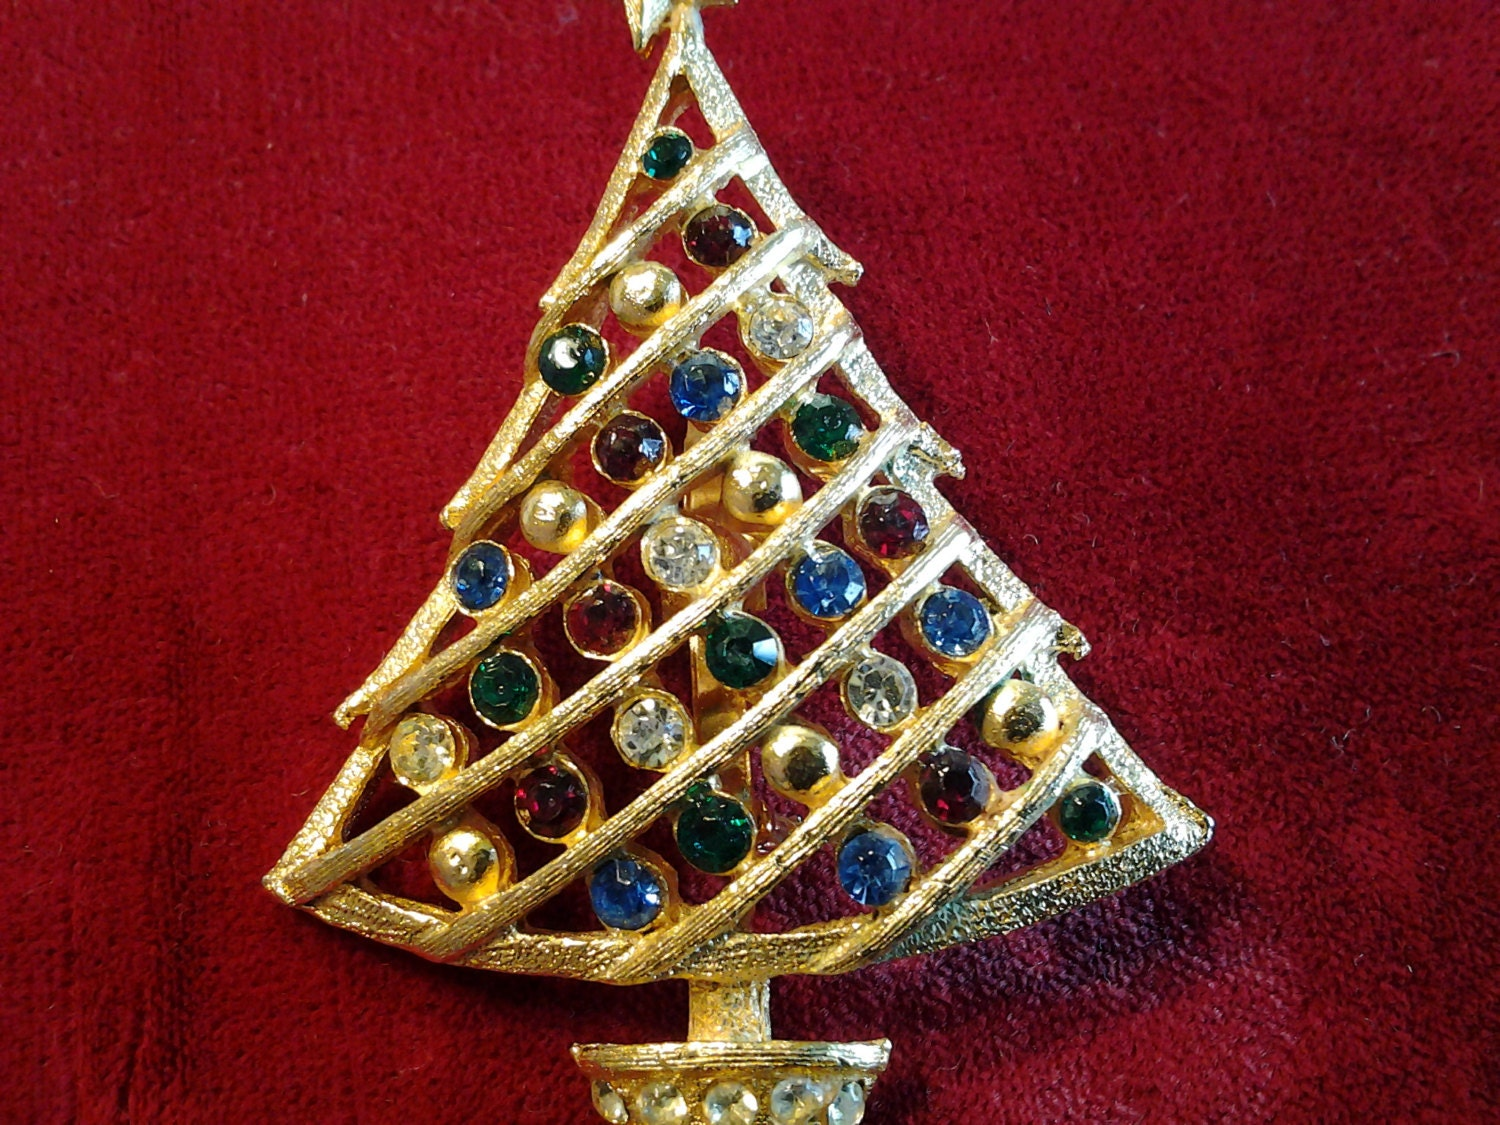 Apr 02, · Absolutely beautiful costume jewelry was used to form christmas tree shapes and then beautifully framed. When I saw these for the first time, I had to have one, but they were selling for $ and up. Now you must know that I am a huge fan of shopping Reviews: